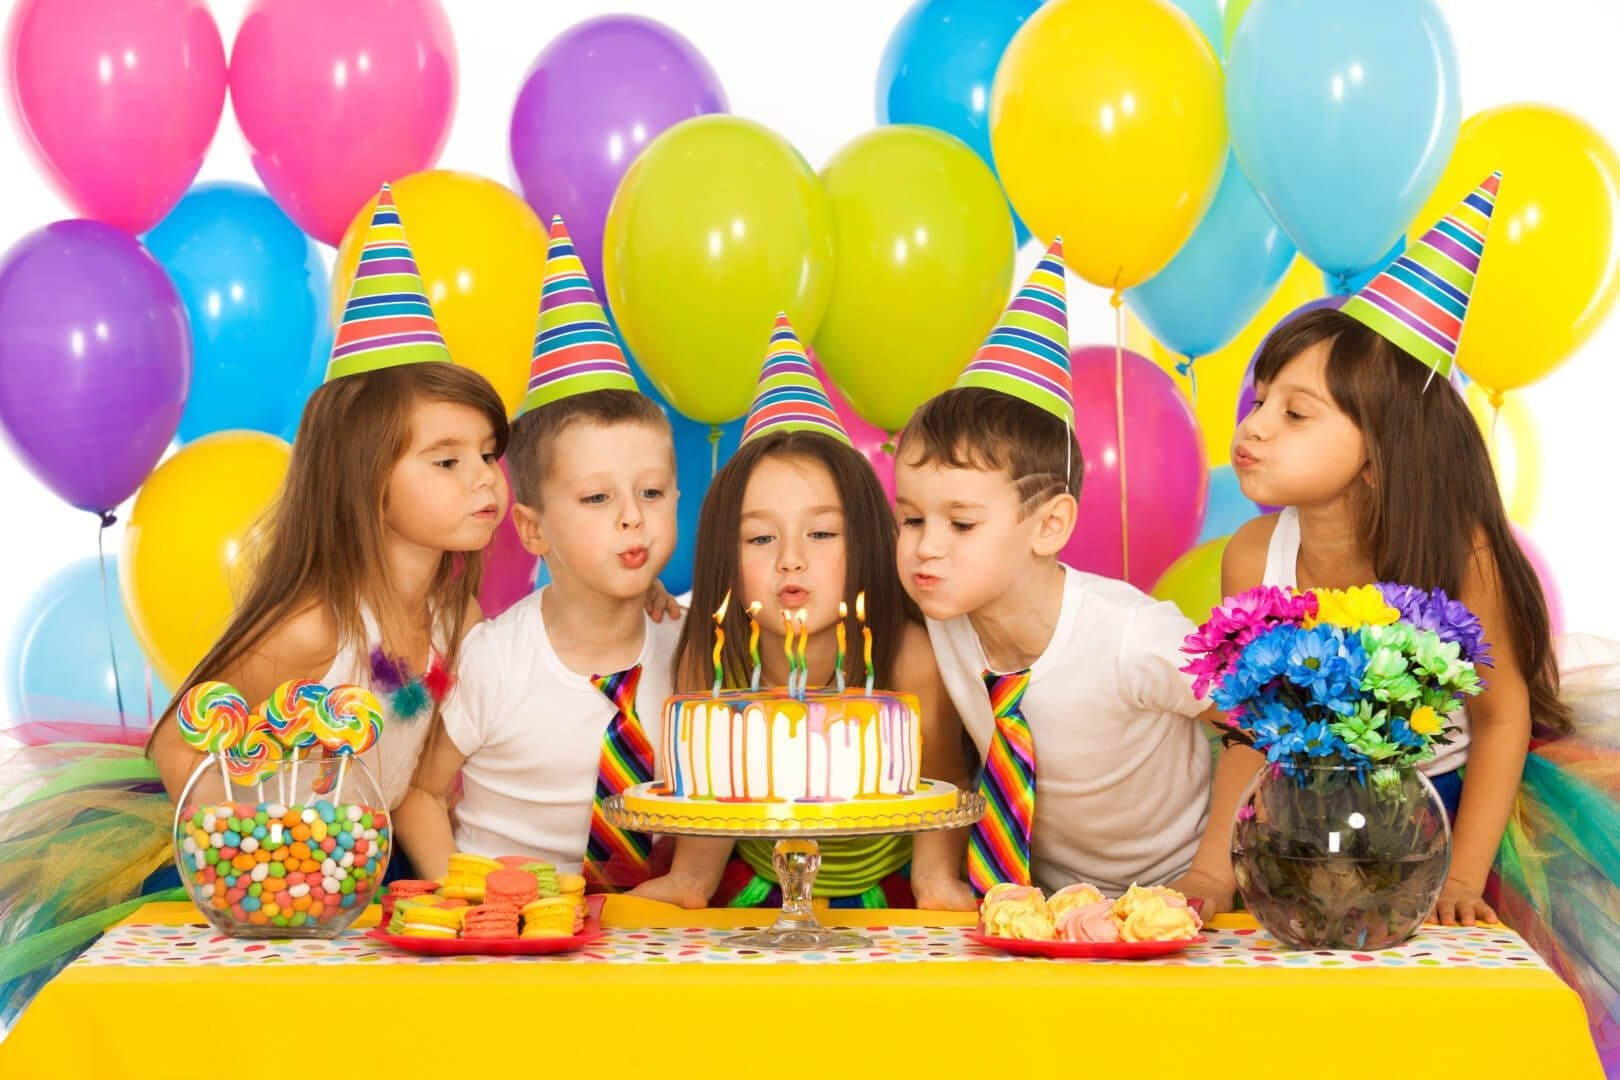 Stupendous Best Nj Bakeries For Kids Birthday Parties Best Of Nj Funny Birthday Cards Online Inifofree Goldxyz